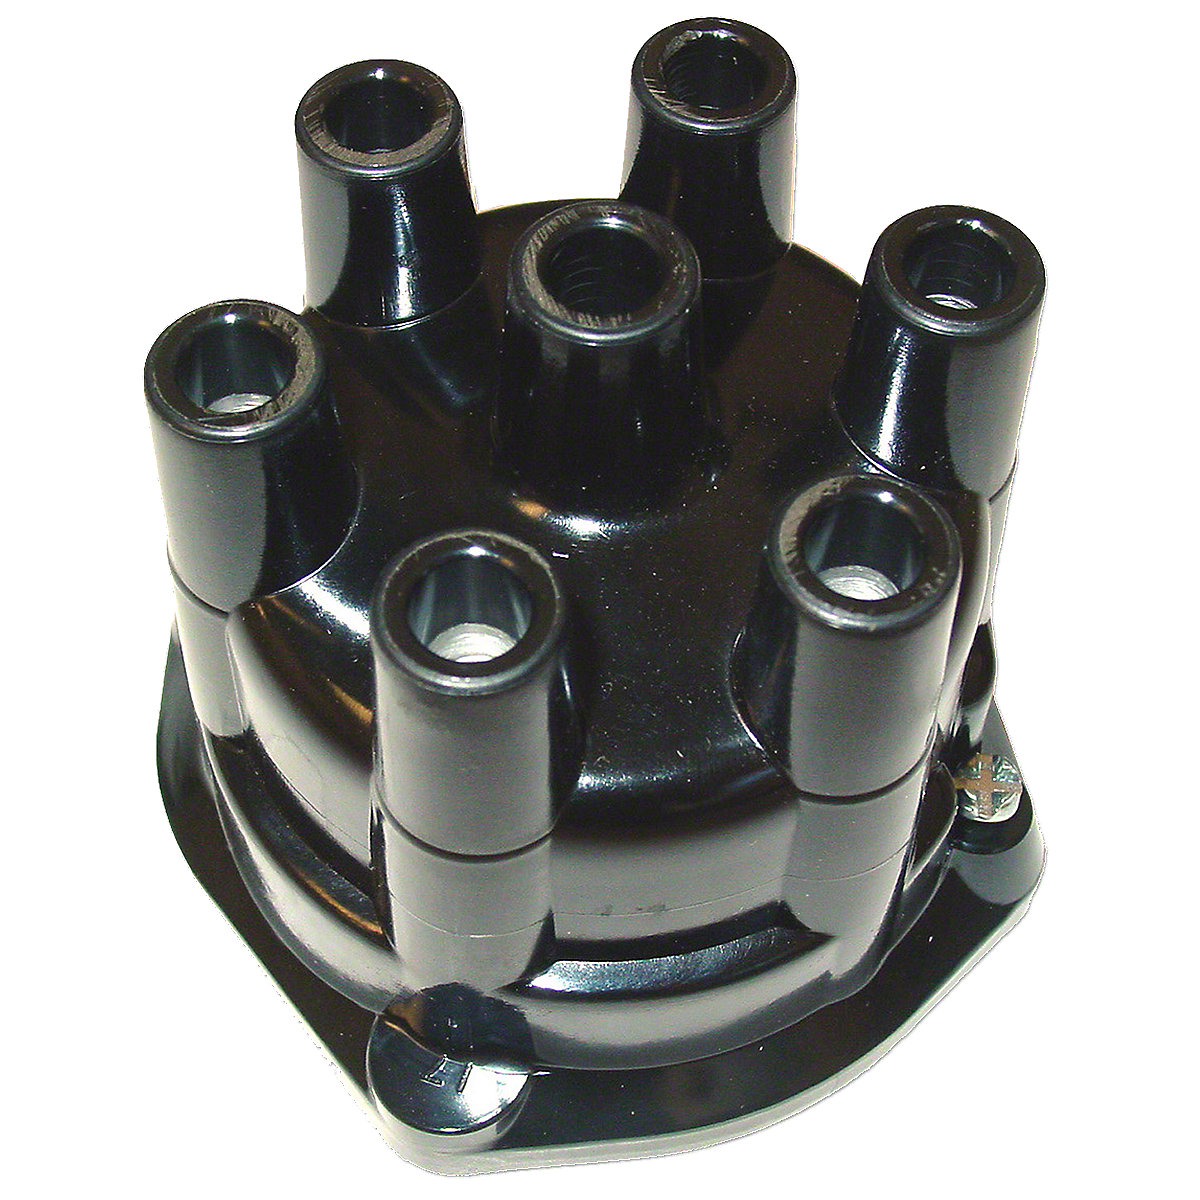 6 Cylinder Distributor Cap For Allis Chalmers: 190XT, 180, 190